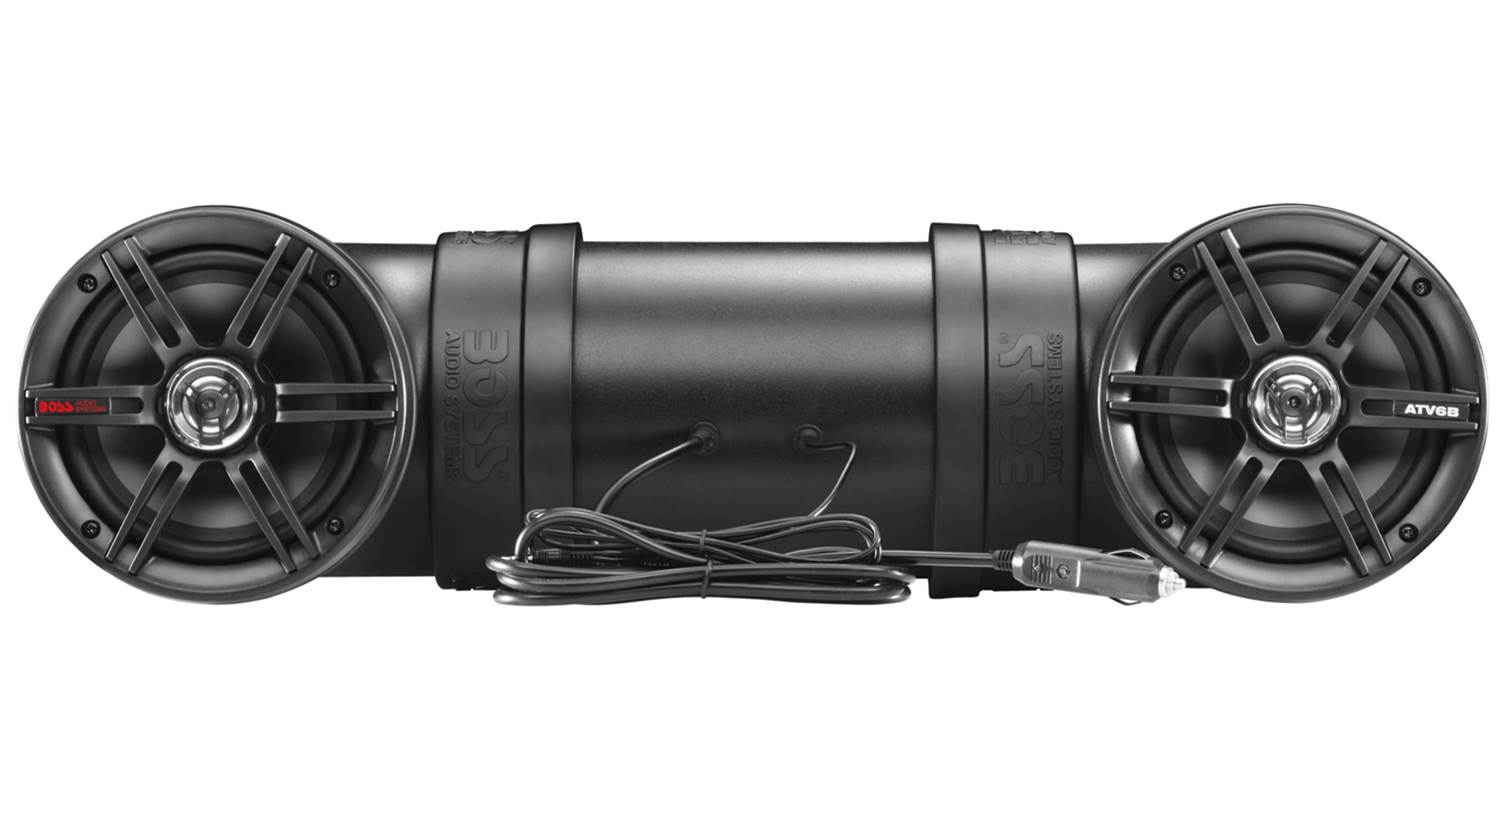 Boss Audio ATV6B Waterproof ATV Speakers